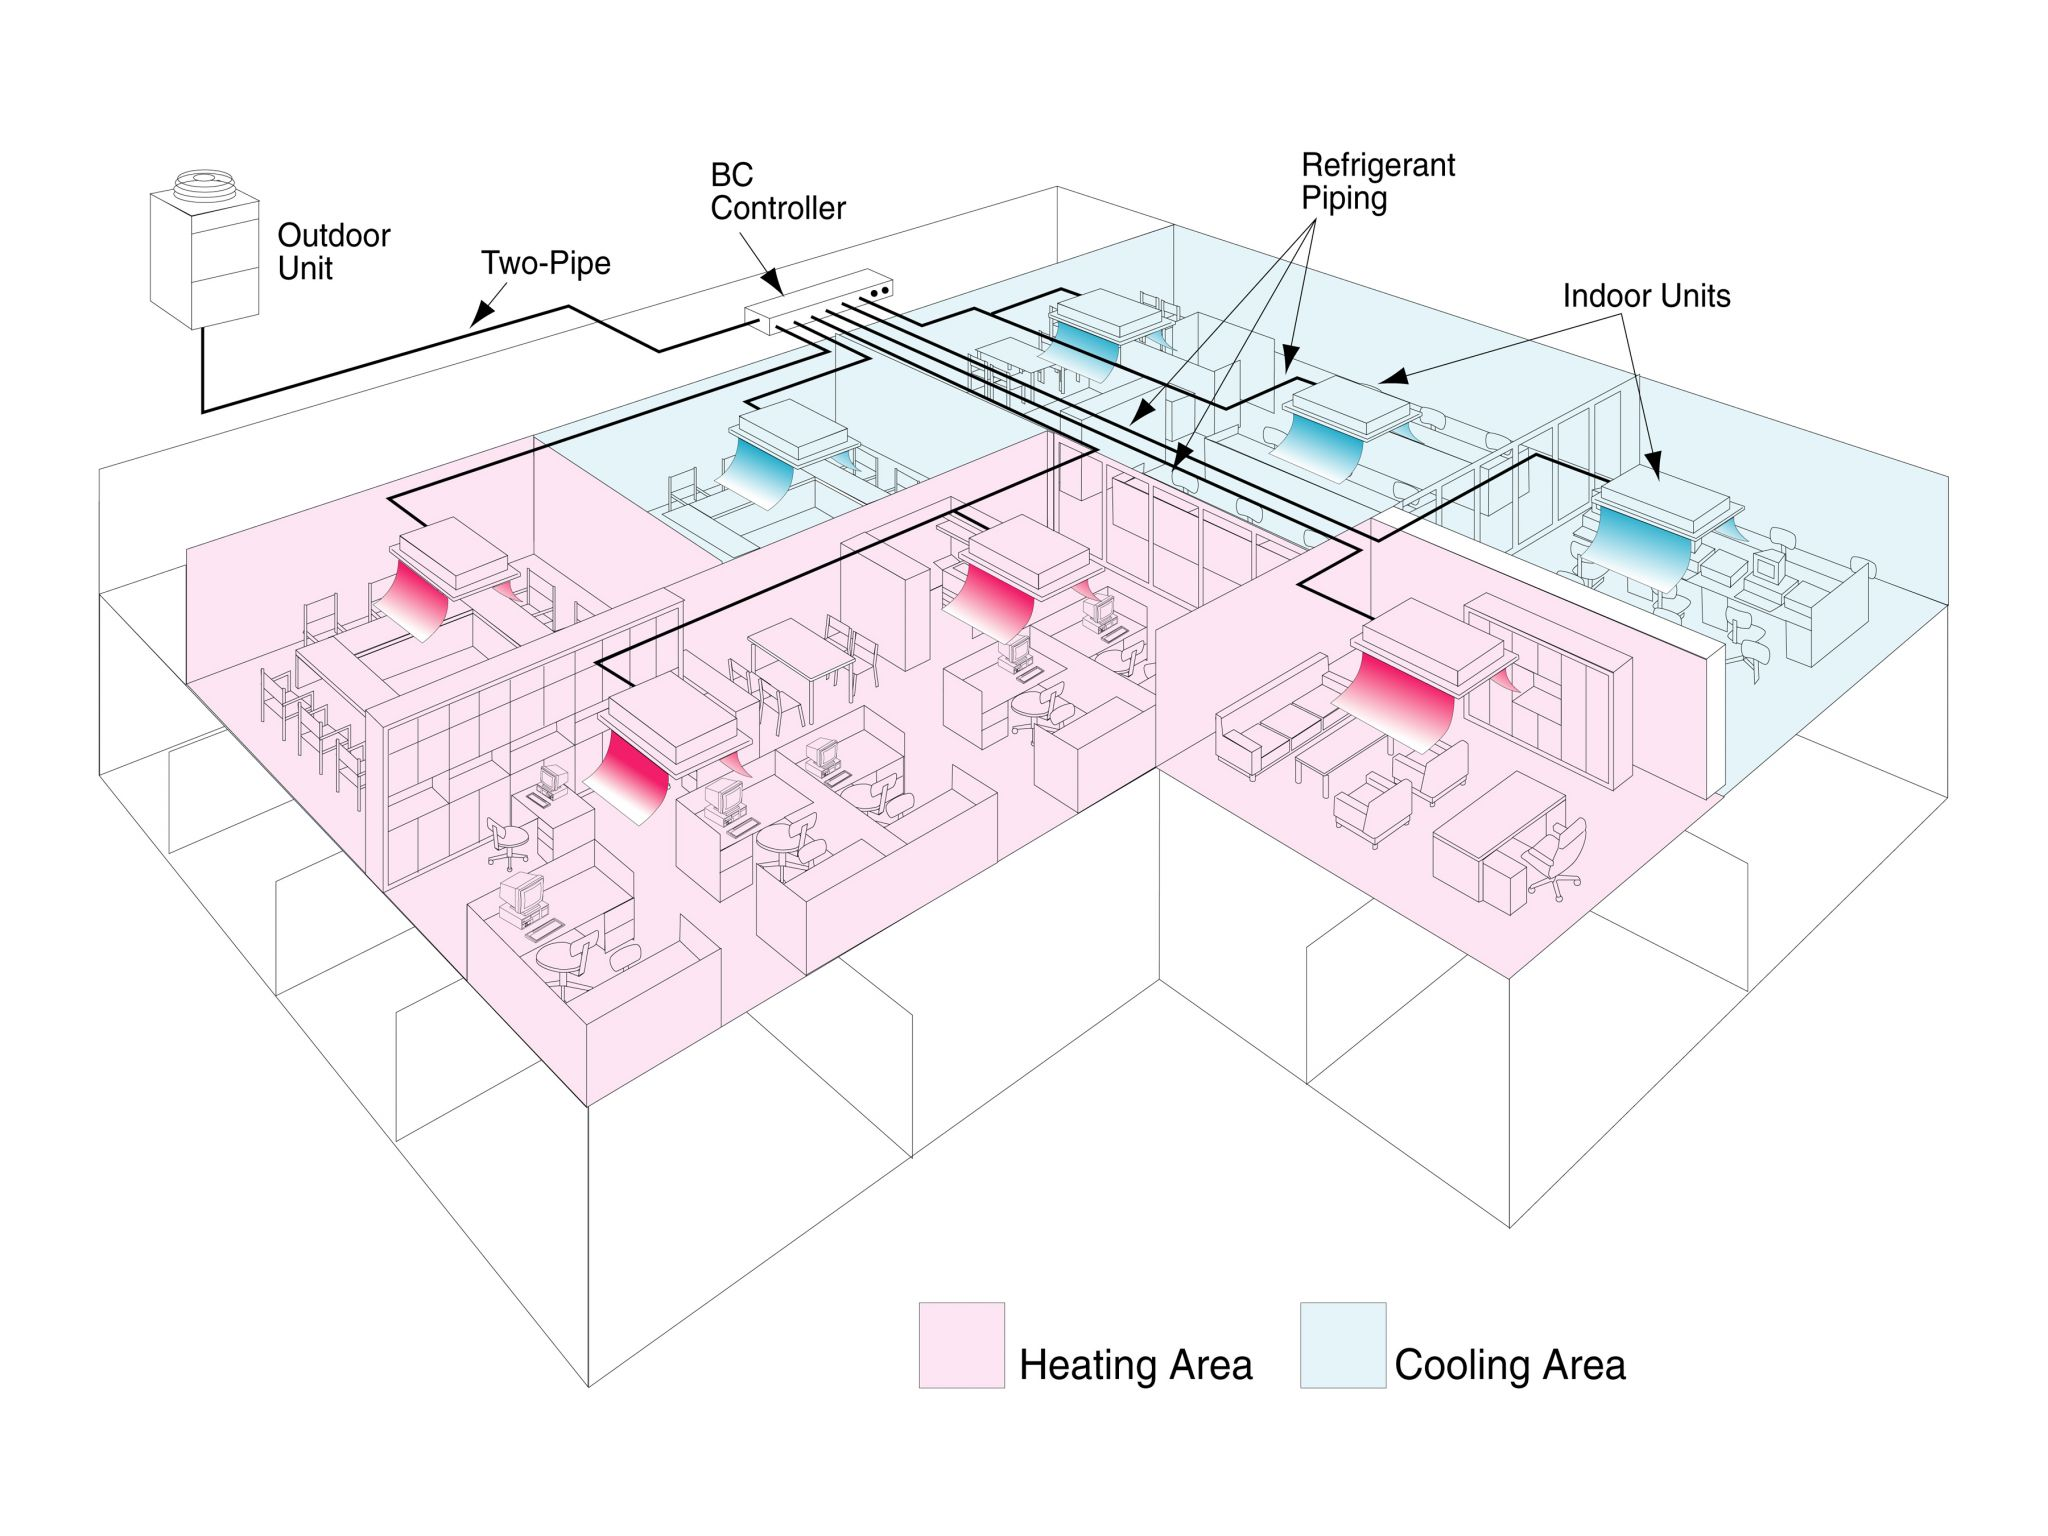 hvac unit diagram industrial air system in gagan vihar Model Cooler in  Diagram Walk Wiring Bht030h2b Walk-In Freezer Defrost Heater